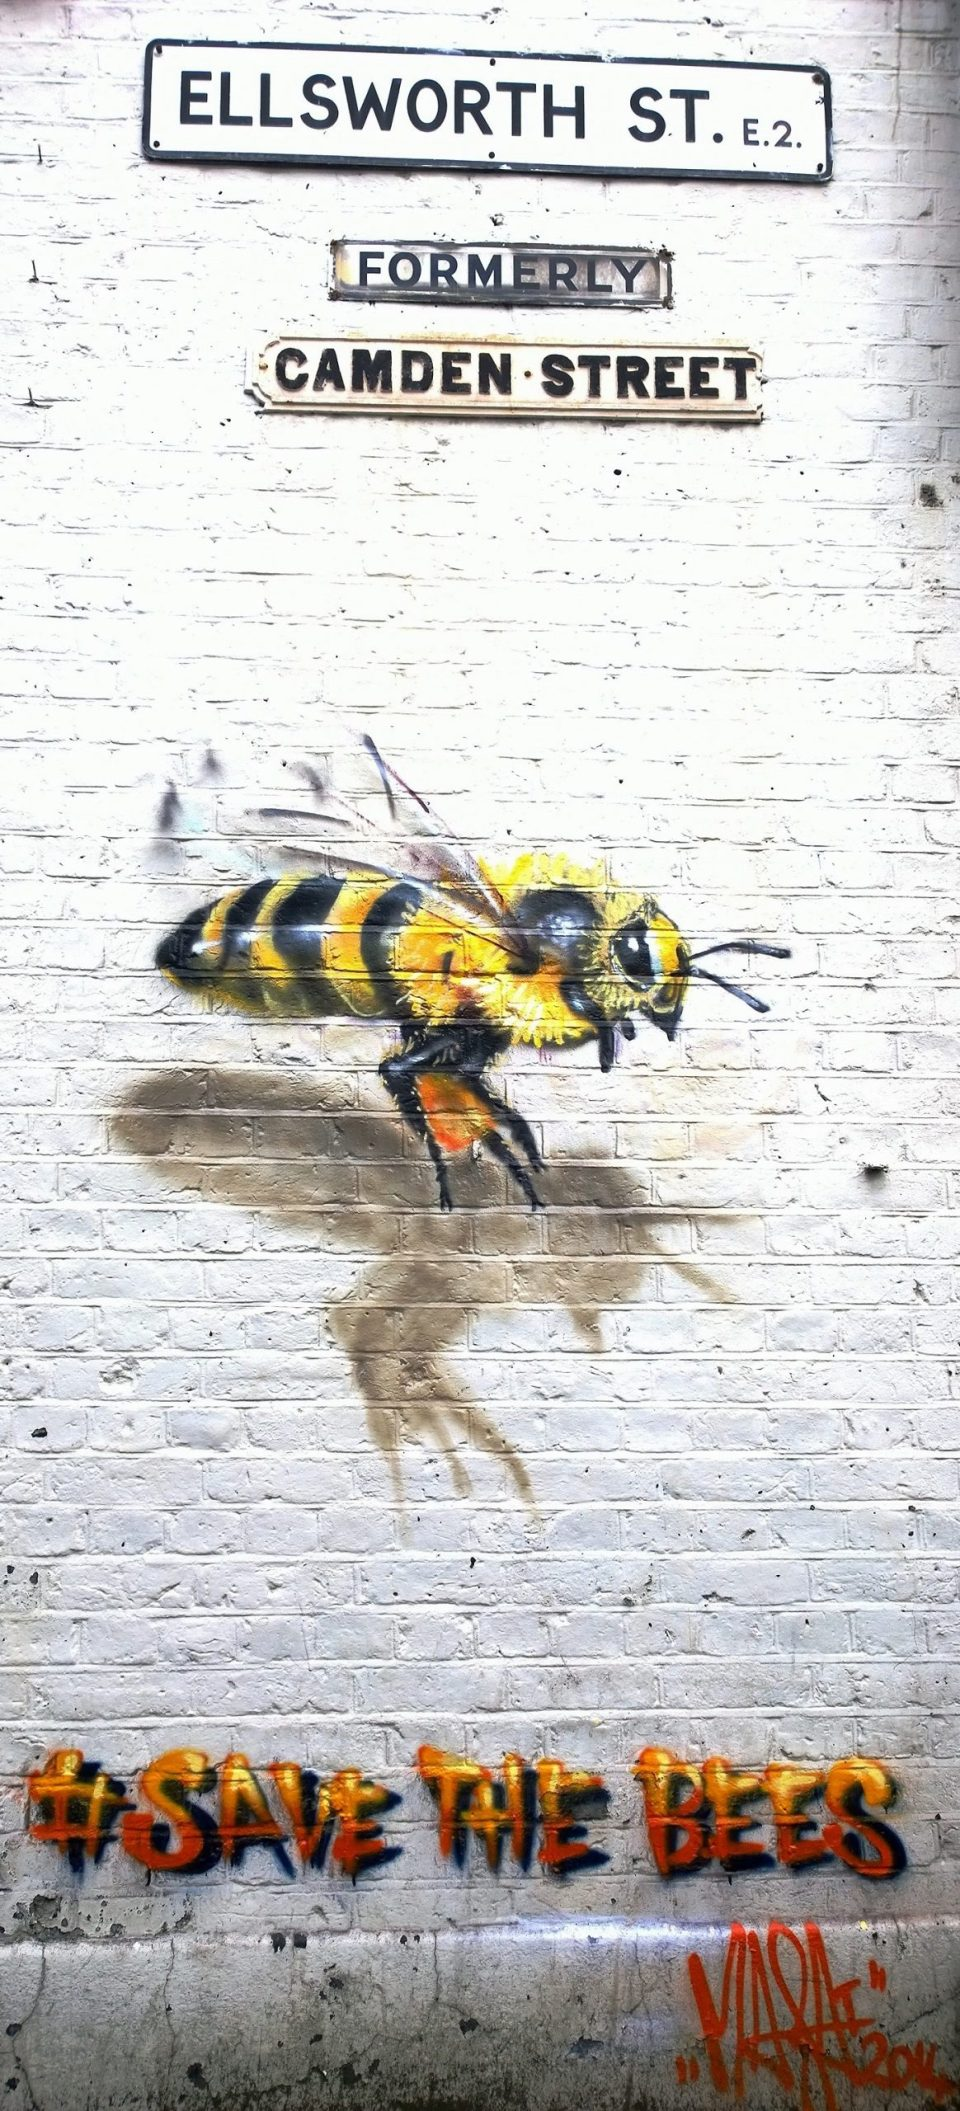 Flying Bee on Ellsworth Street